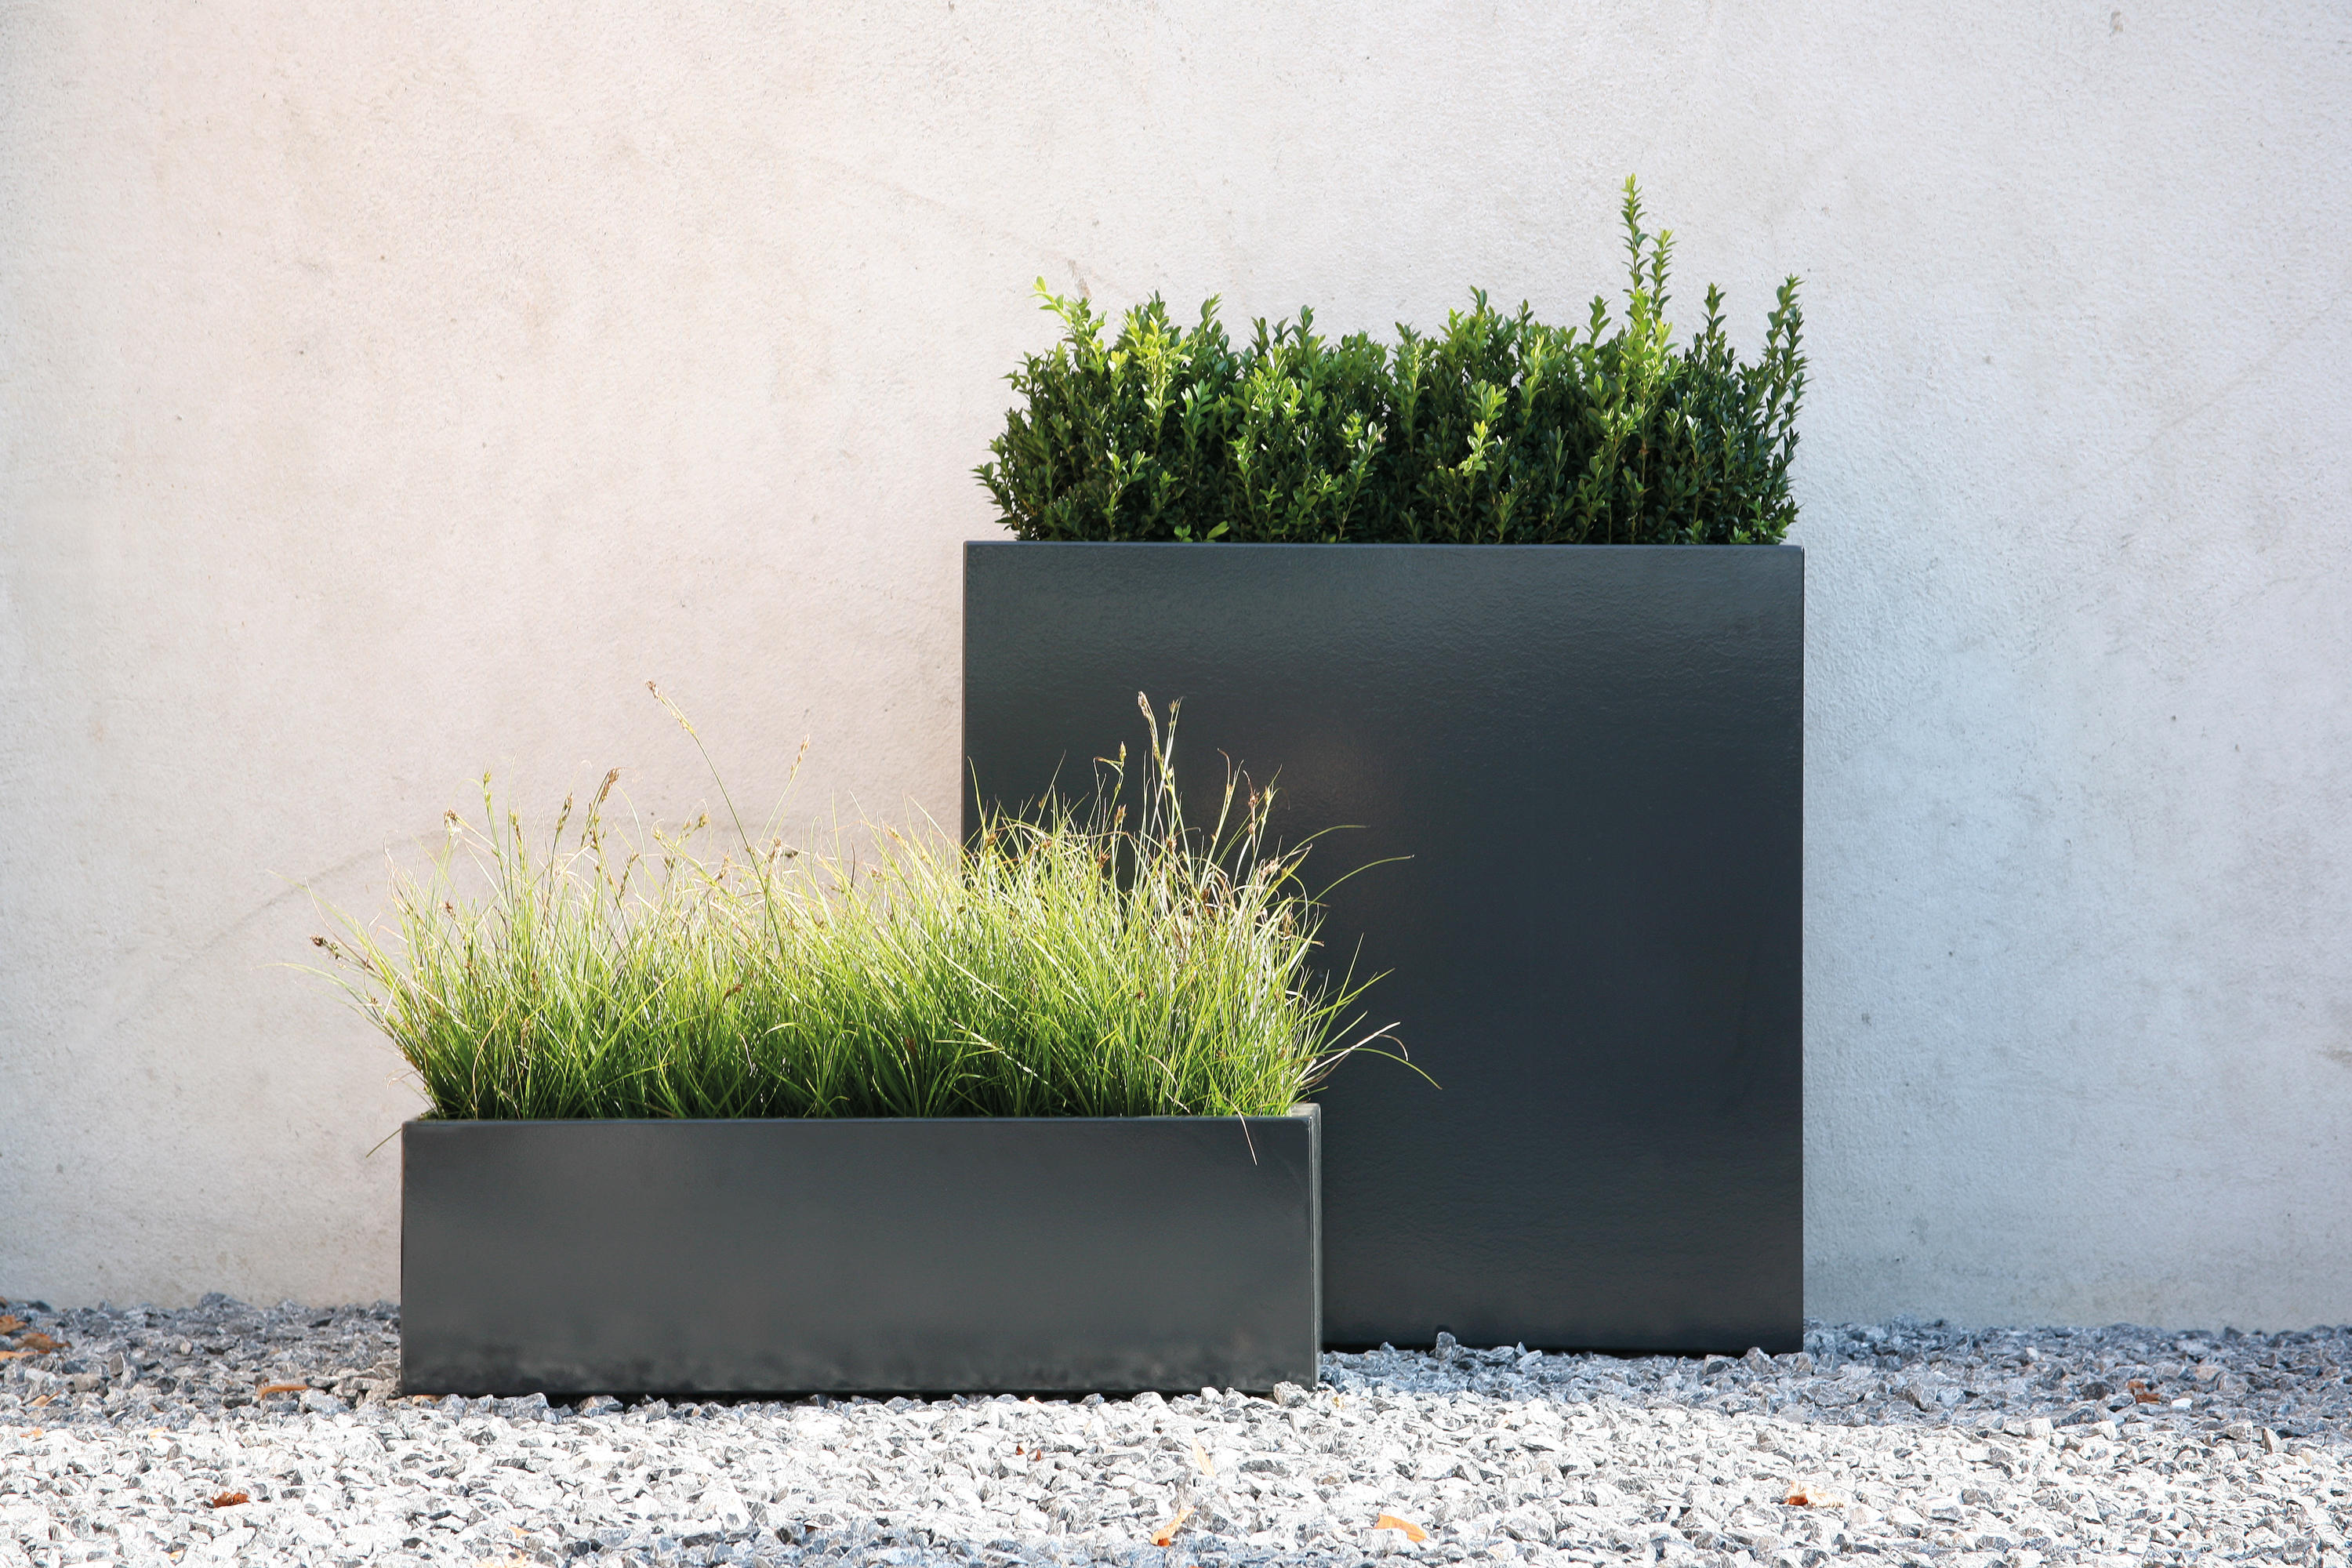 flowerbox plantbox flowerpots planters from conmoto. Black Bedroom Furniture Sets. Home Design Ideas